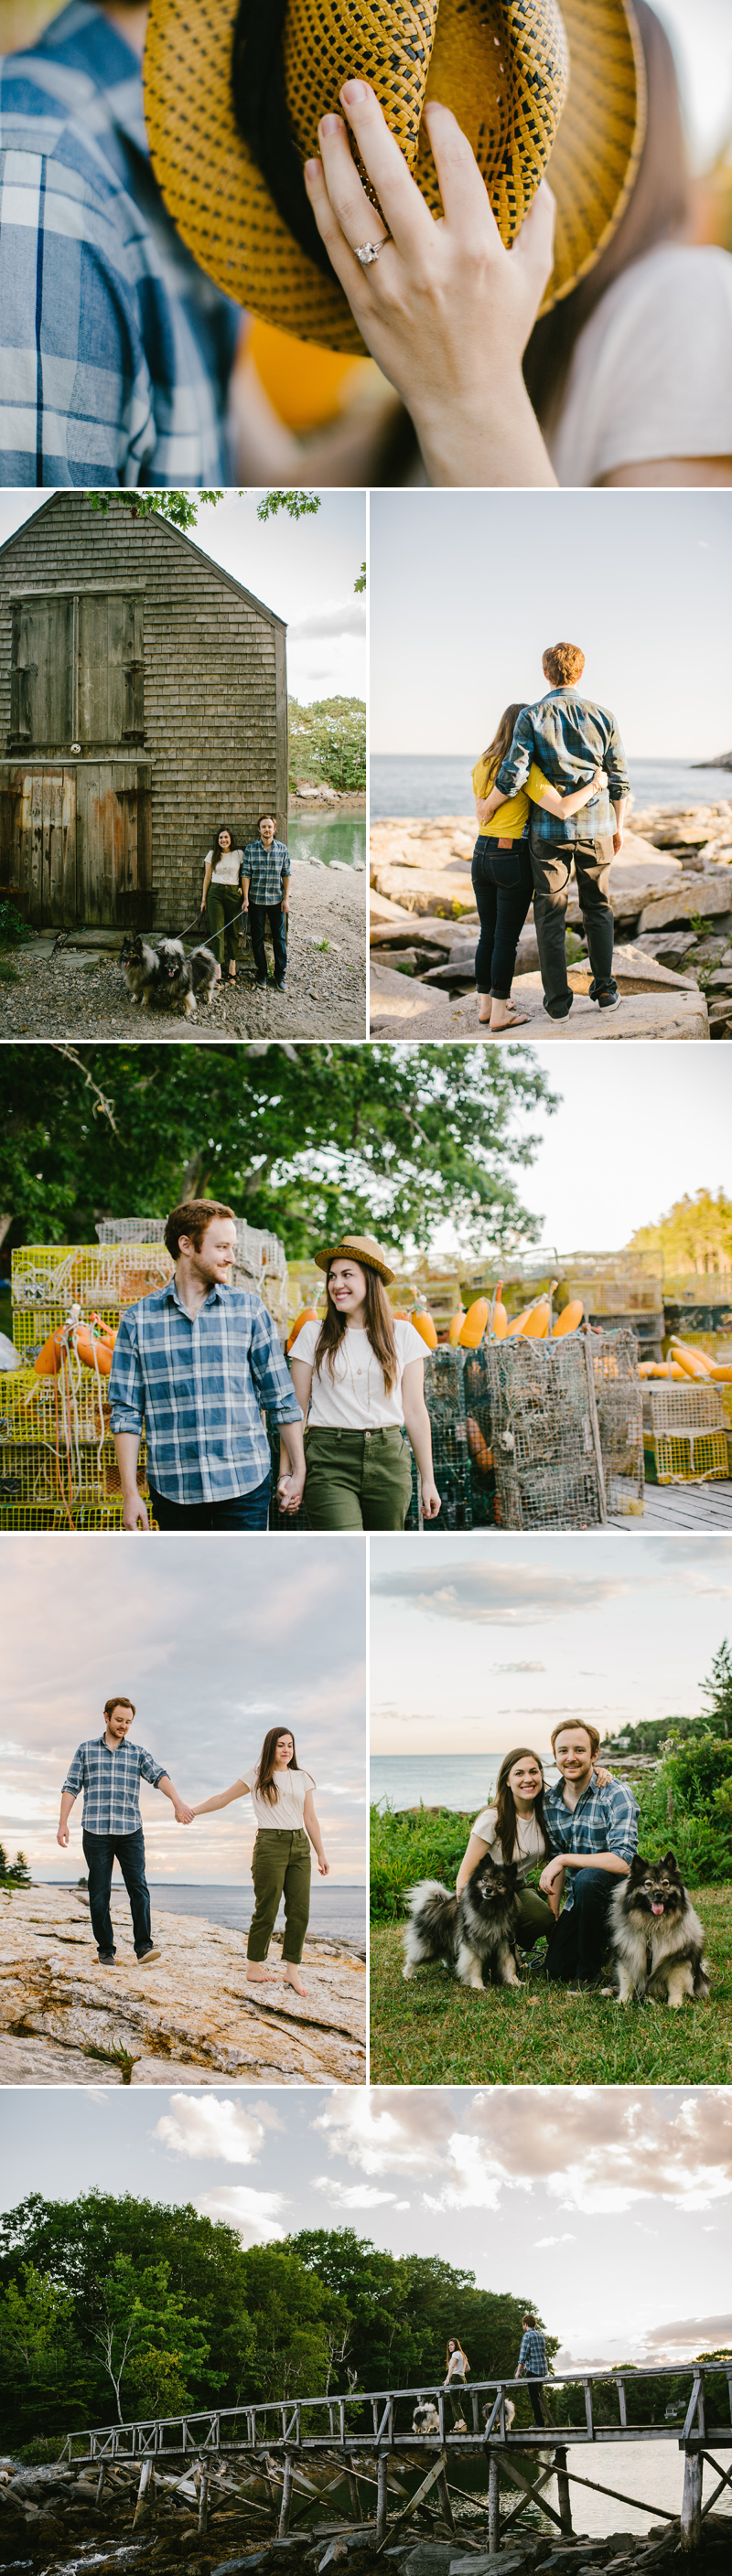 02-coastal-maine-engagement-greta-tucker.jpg